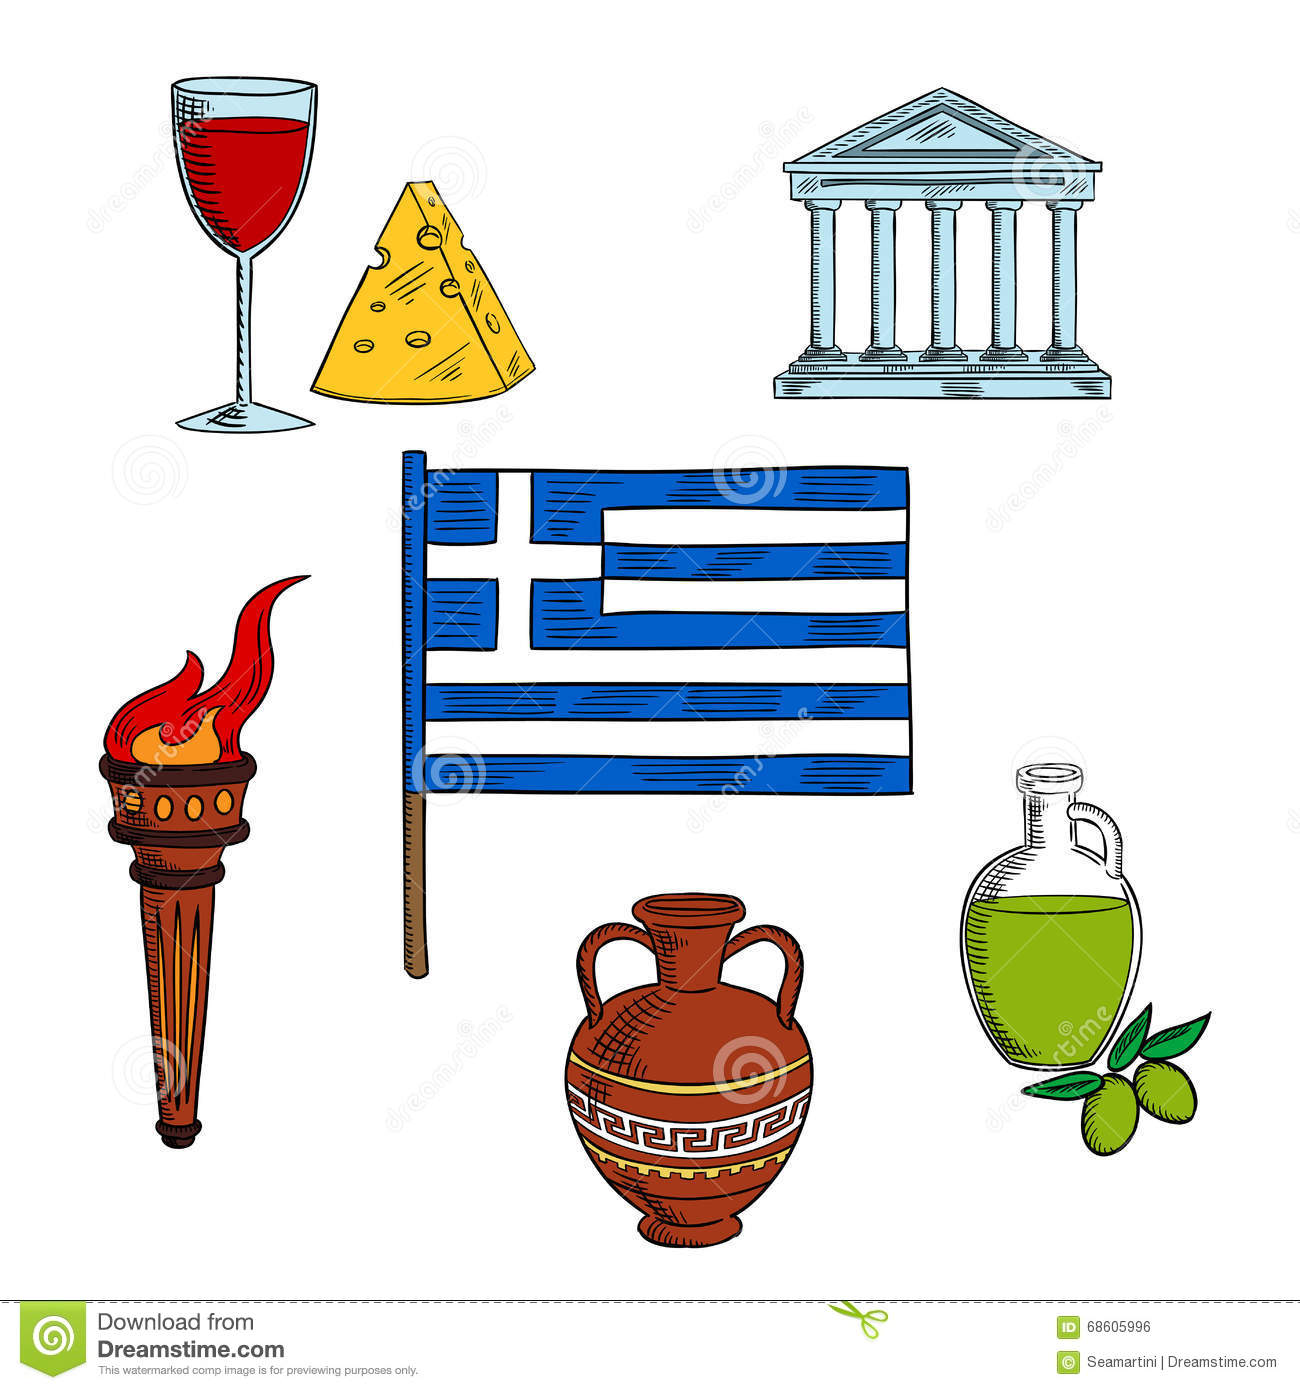 Symbols of greece for travel design stock vector illustration of symbols of greece for travel design biocorpaavc Image collections